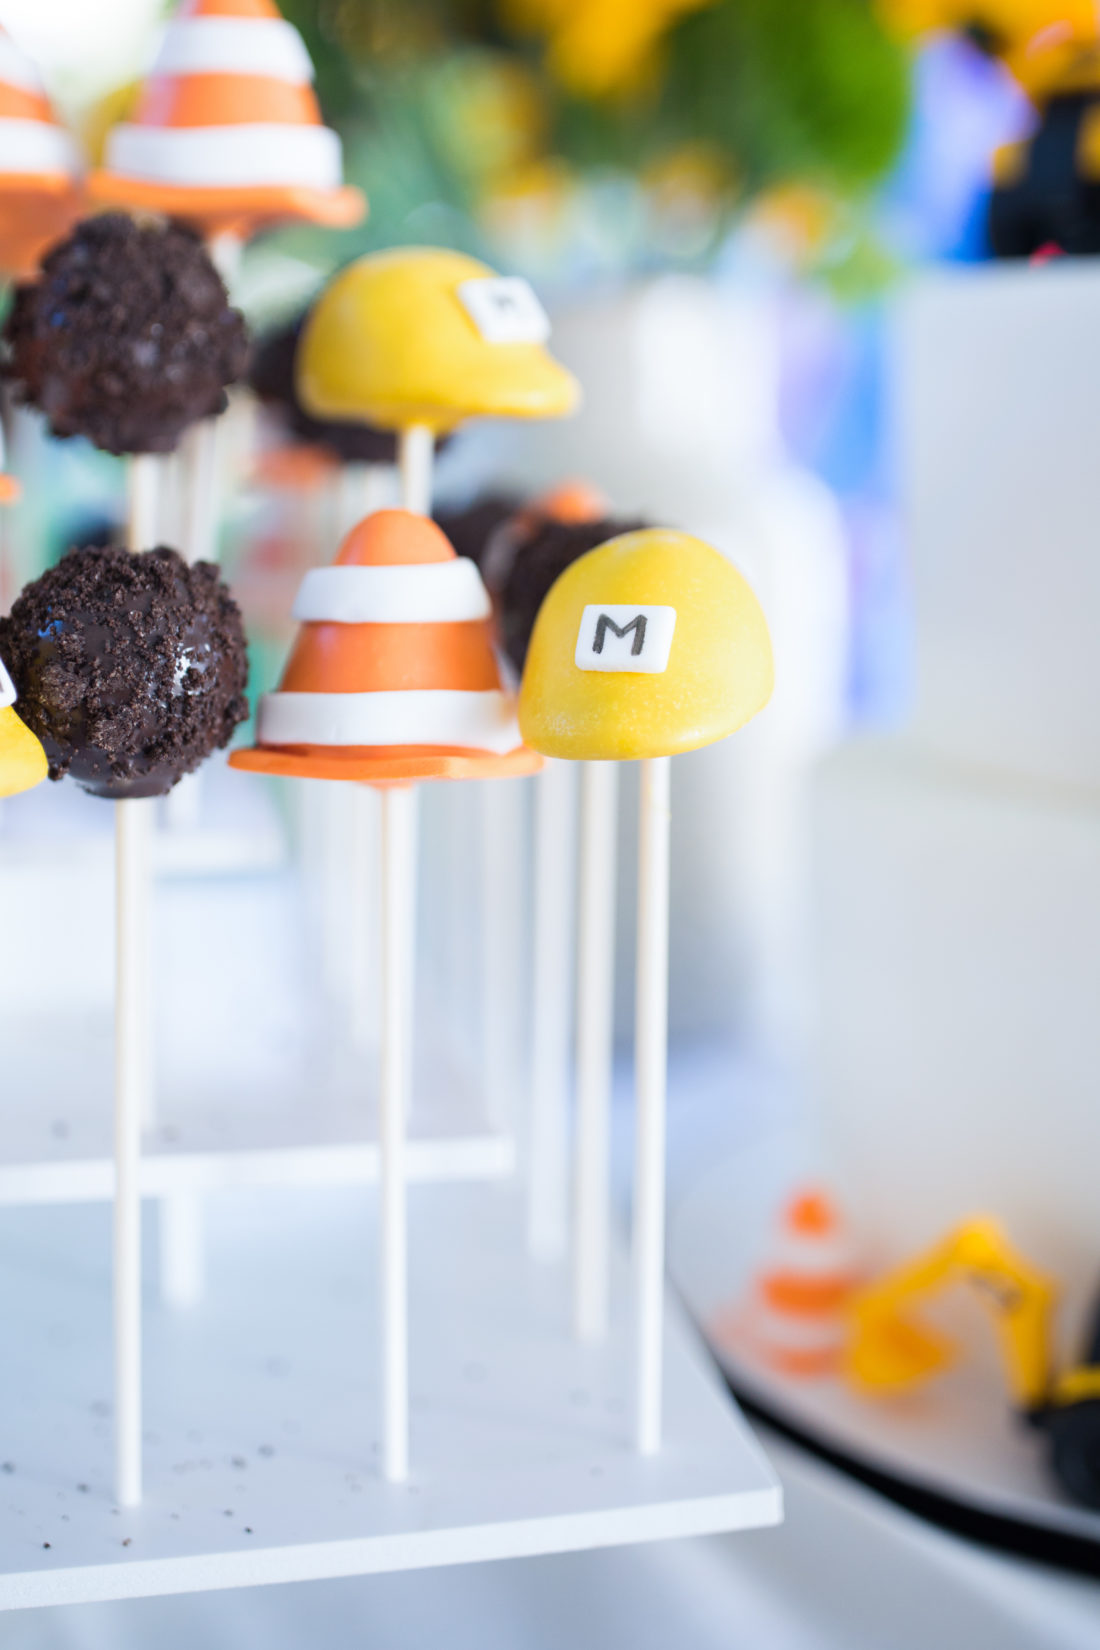 The Construction Zone Themed Cake Pops at Major Martino's 3rd Birthday Party